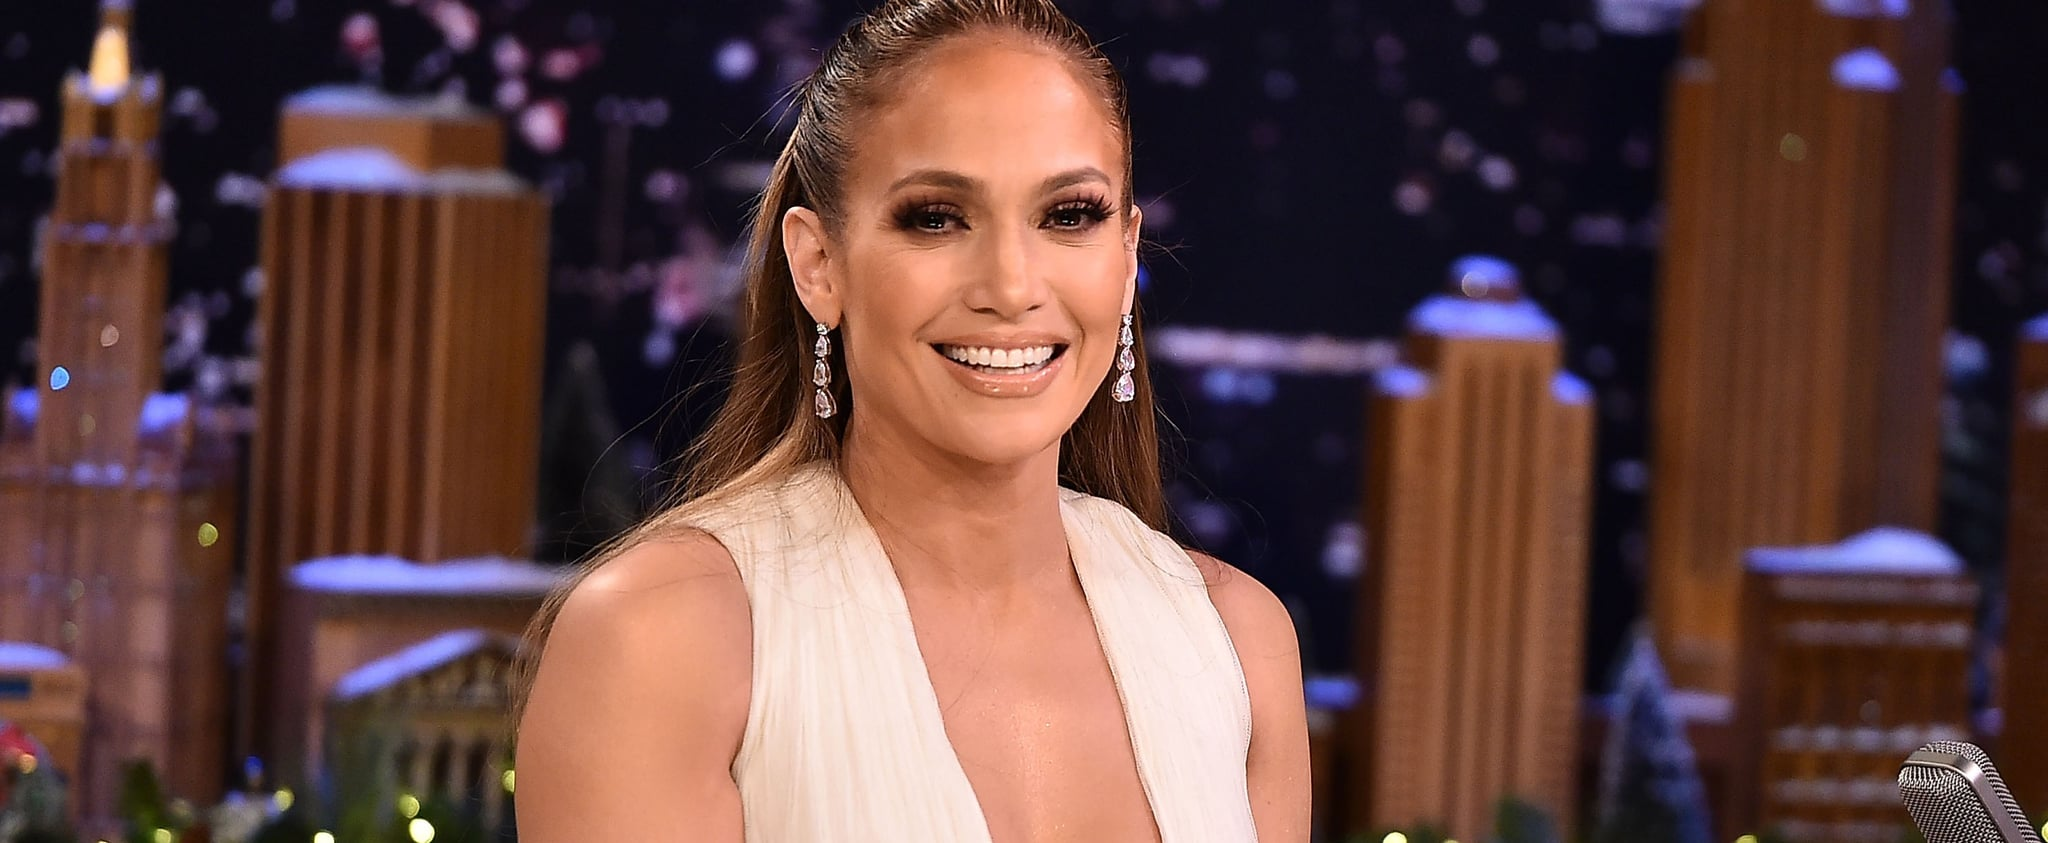 Jennifer Lopez Tutu Dress on The Tonight Show December 2018